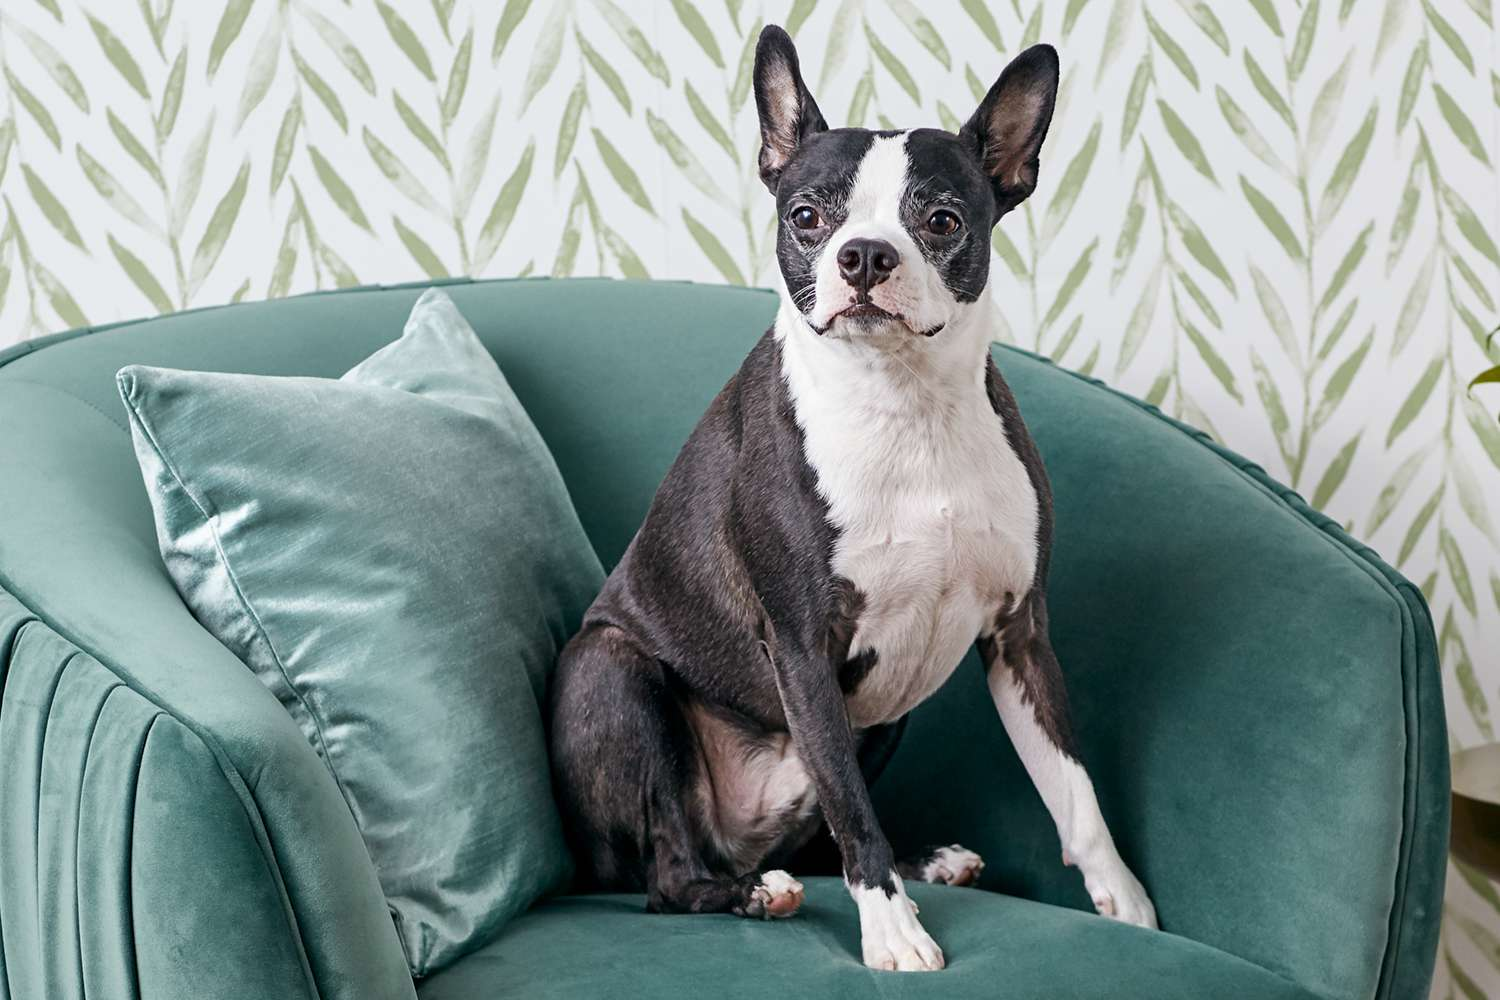 A Boston Terrier